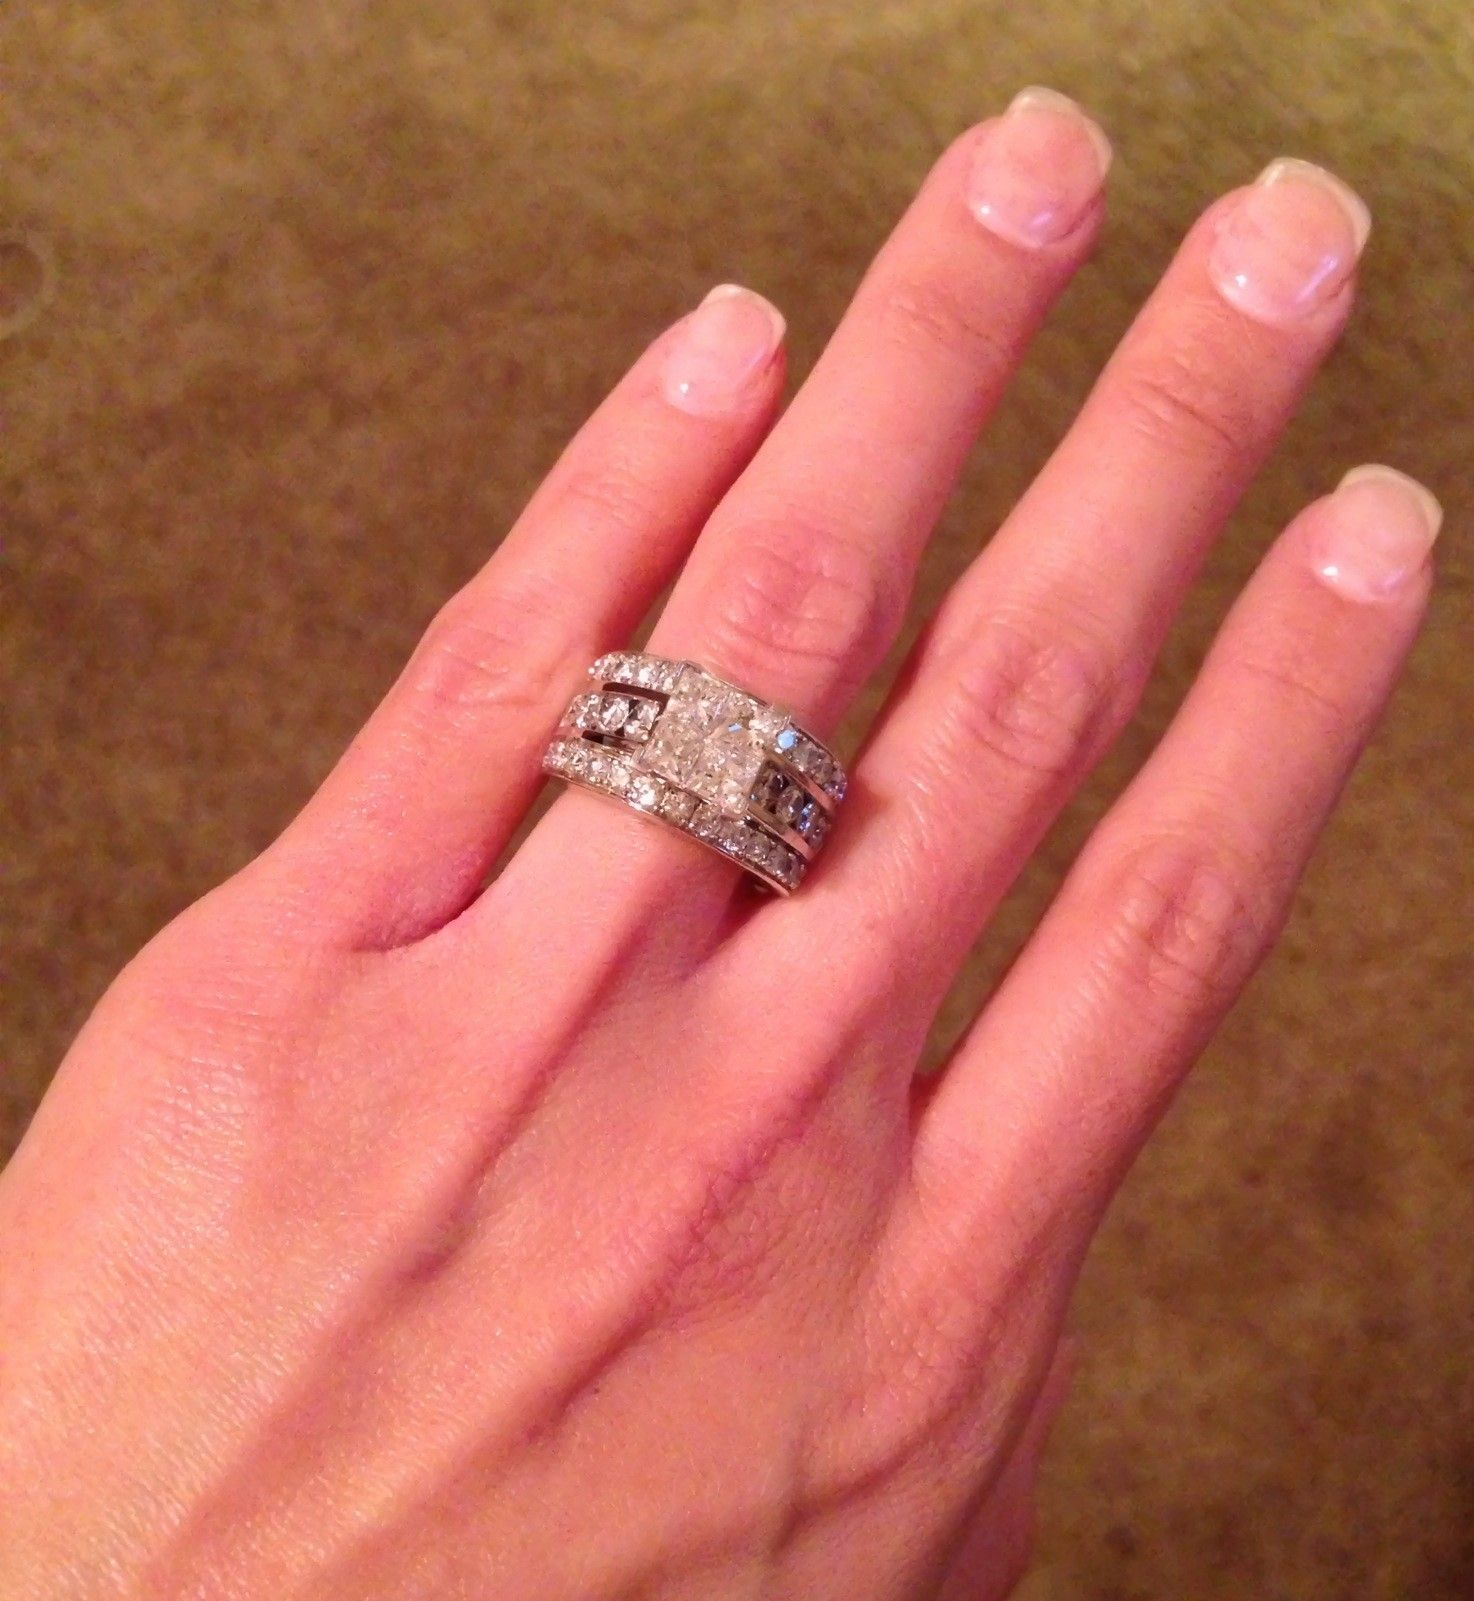 WERE ENGAGED!!!! My love has made this the BEST birthday ever ...